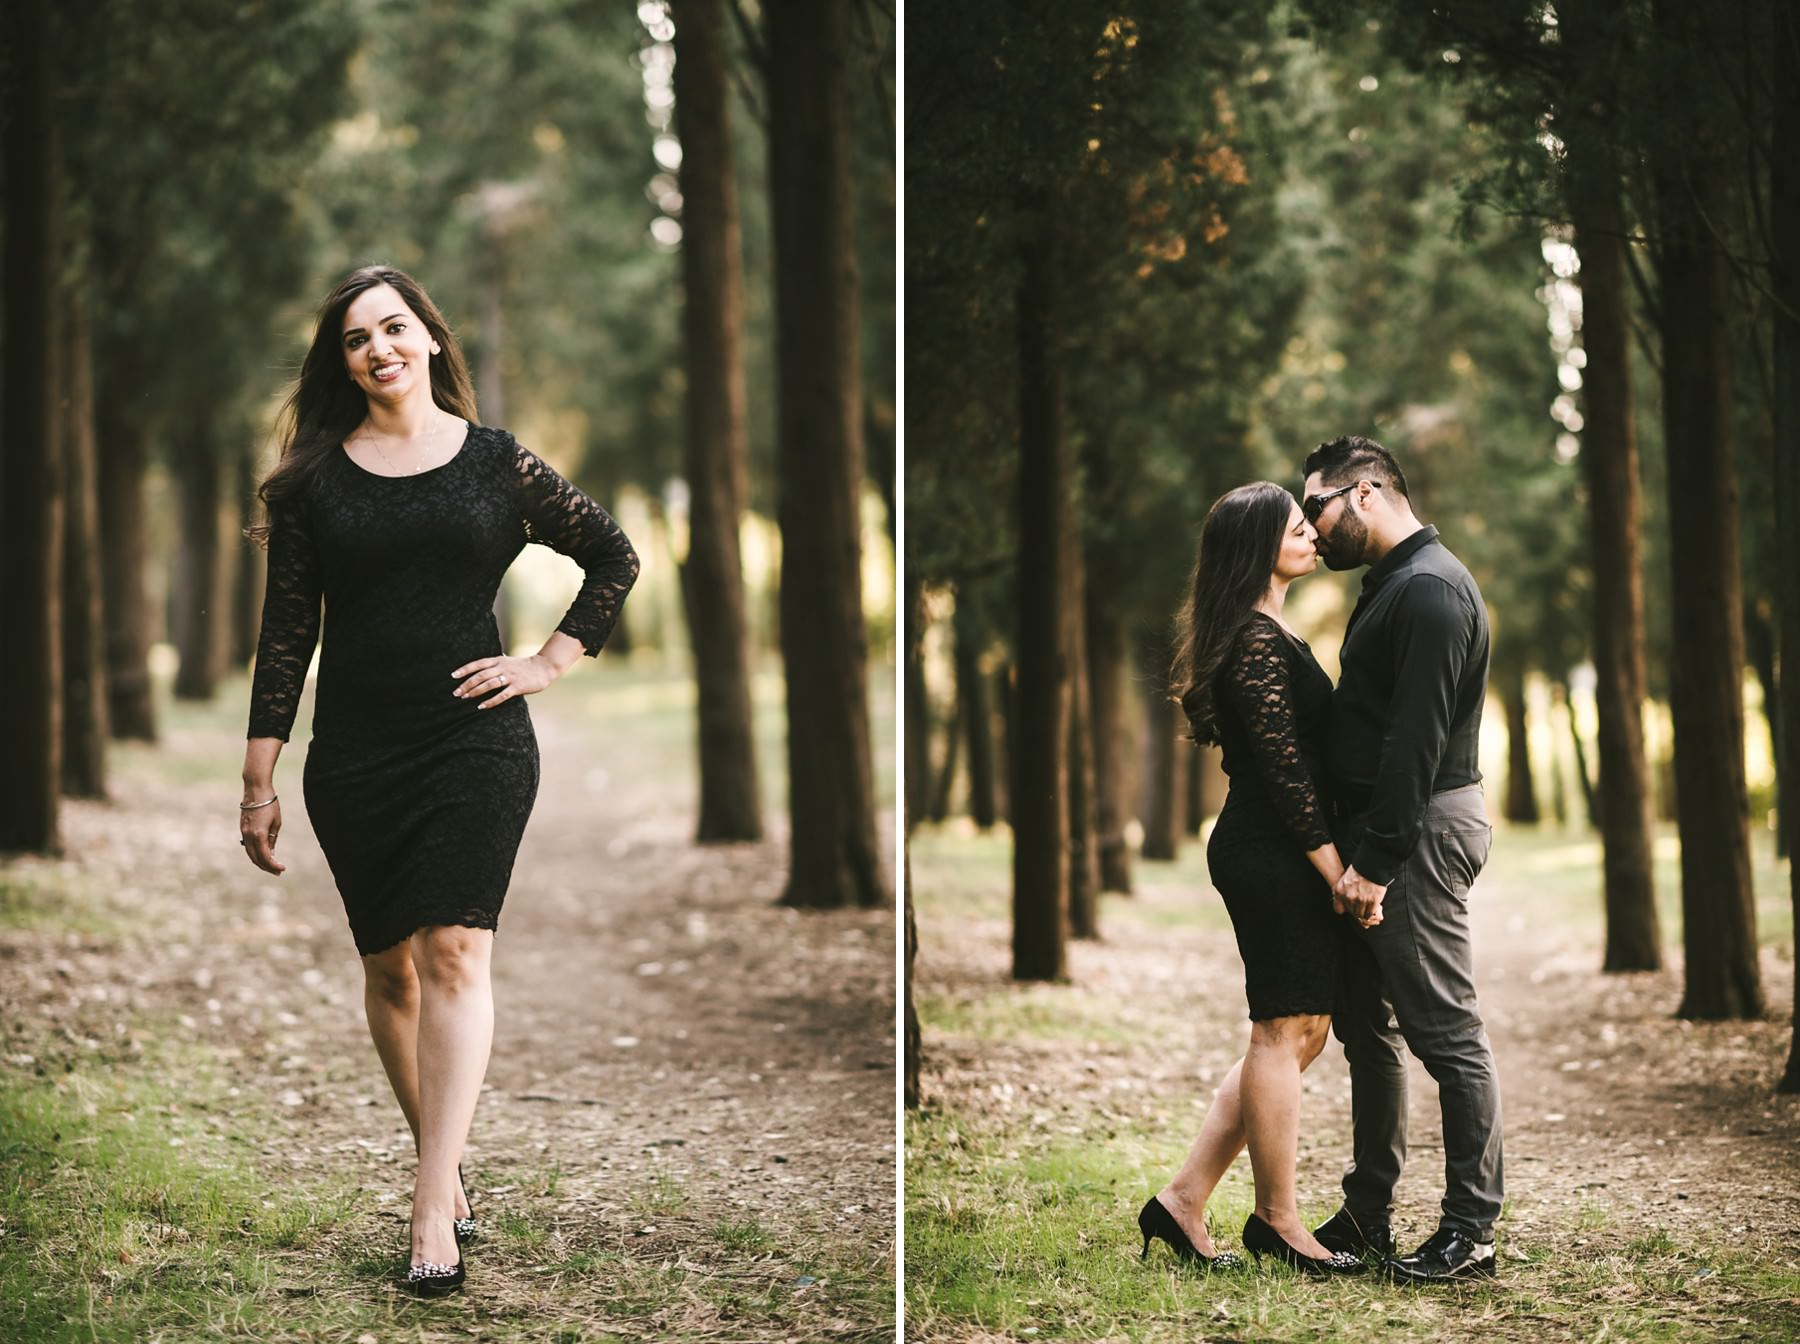 Amaze Her With A Surprise Wedding Proposal And Photo Shoot In Florence